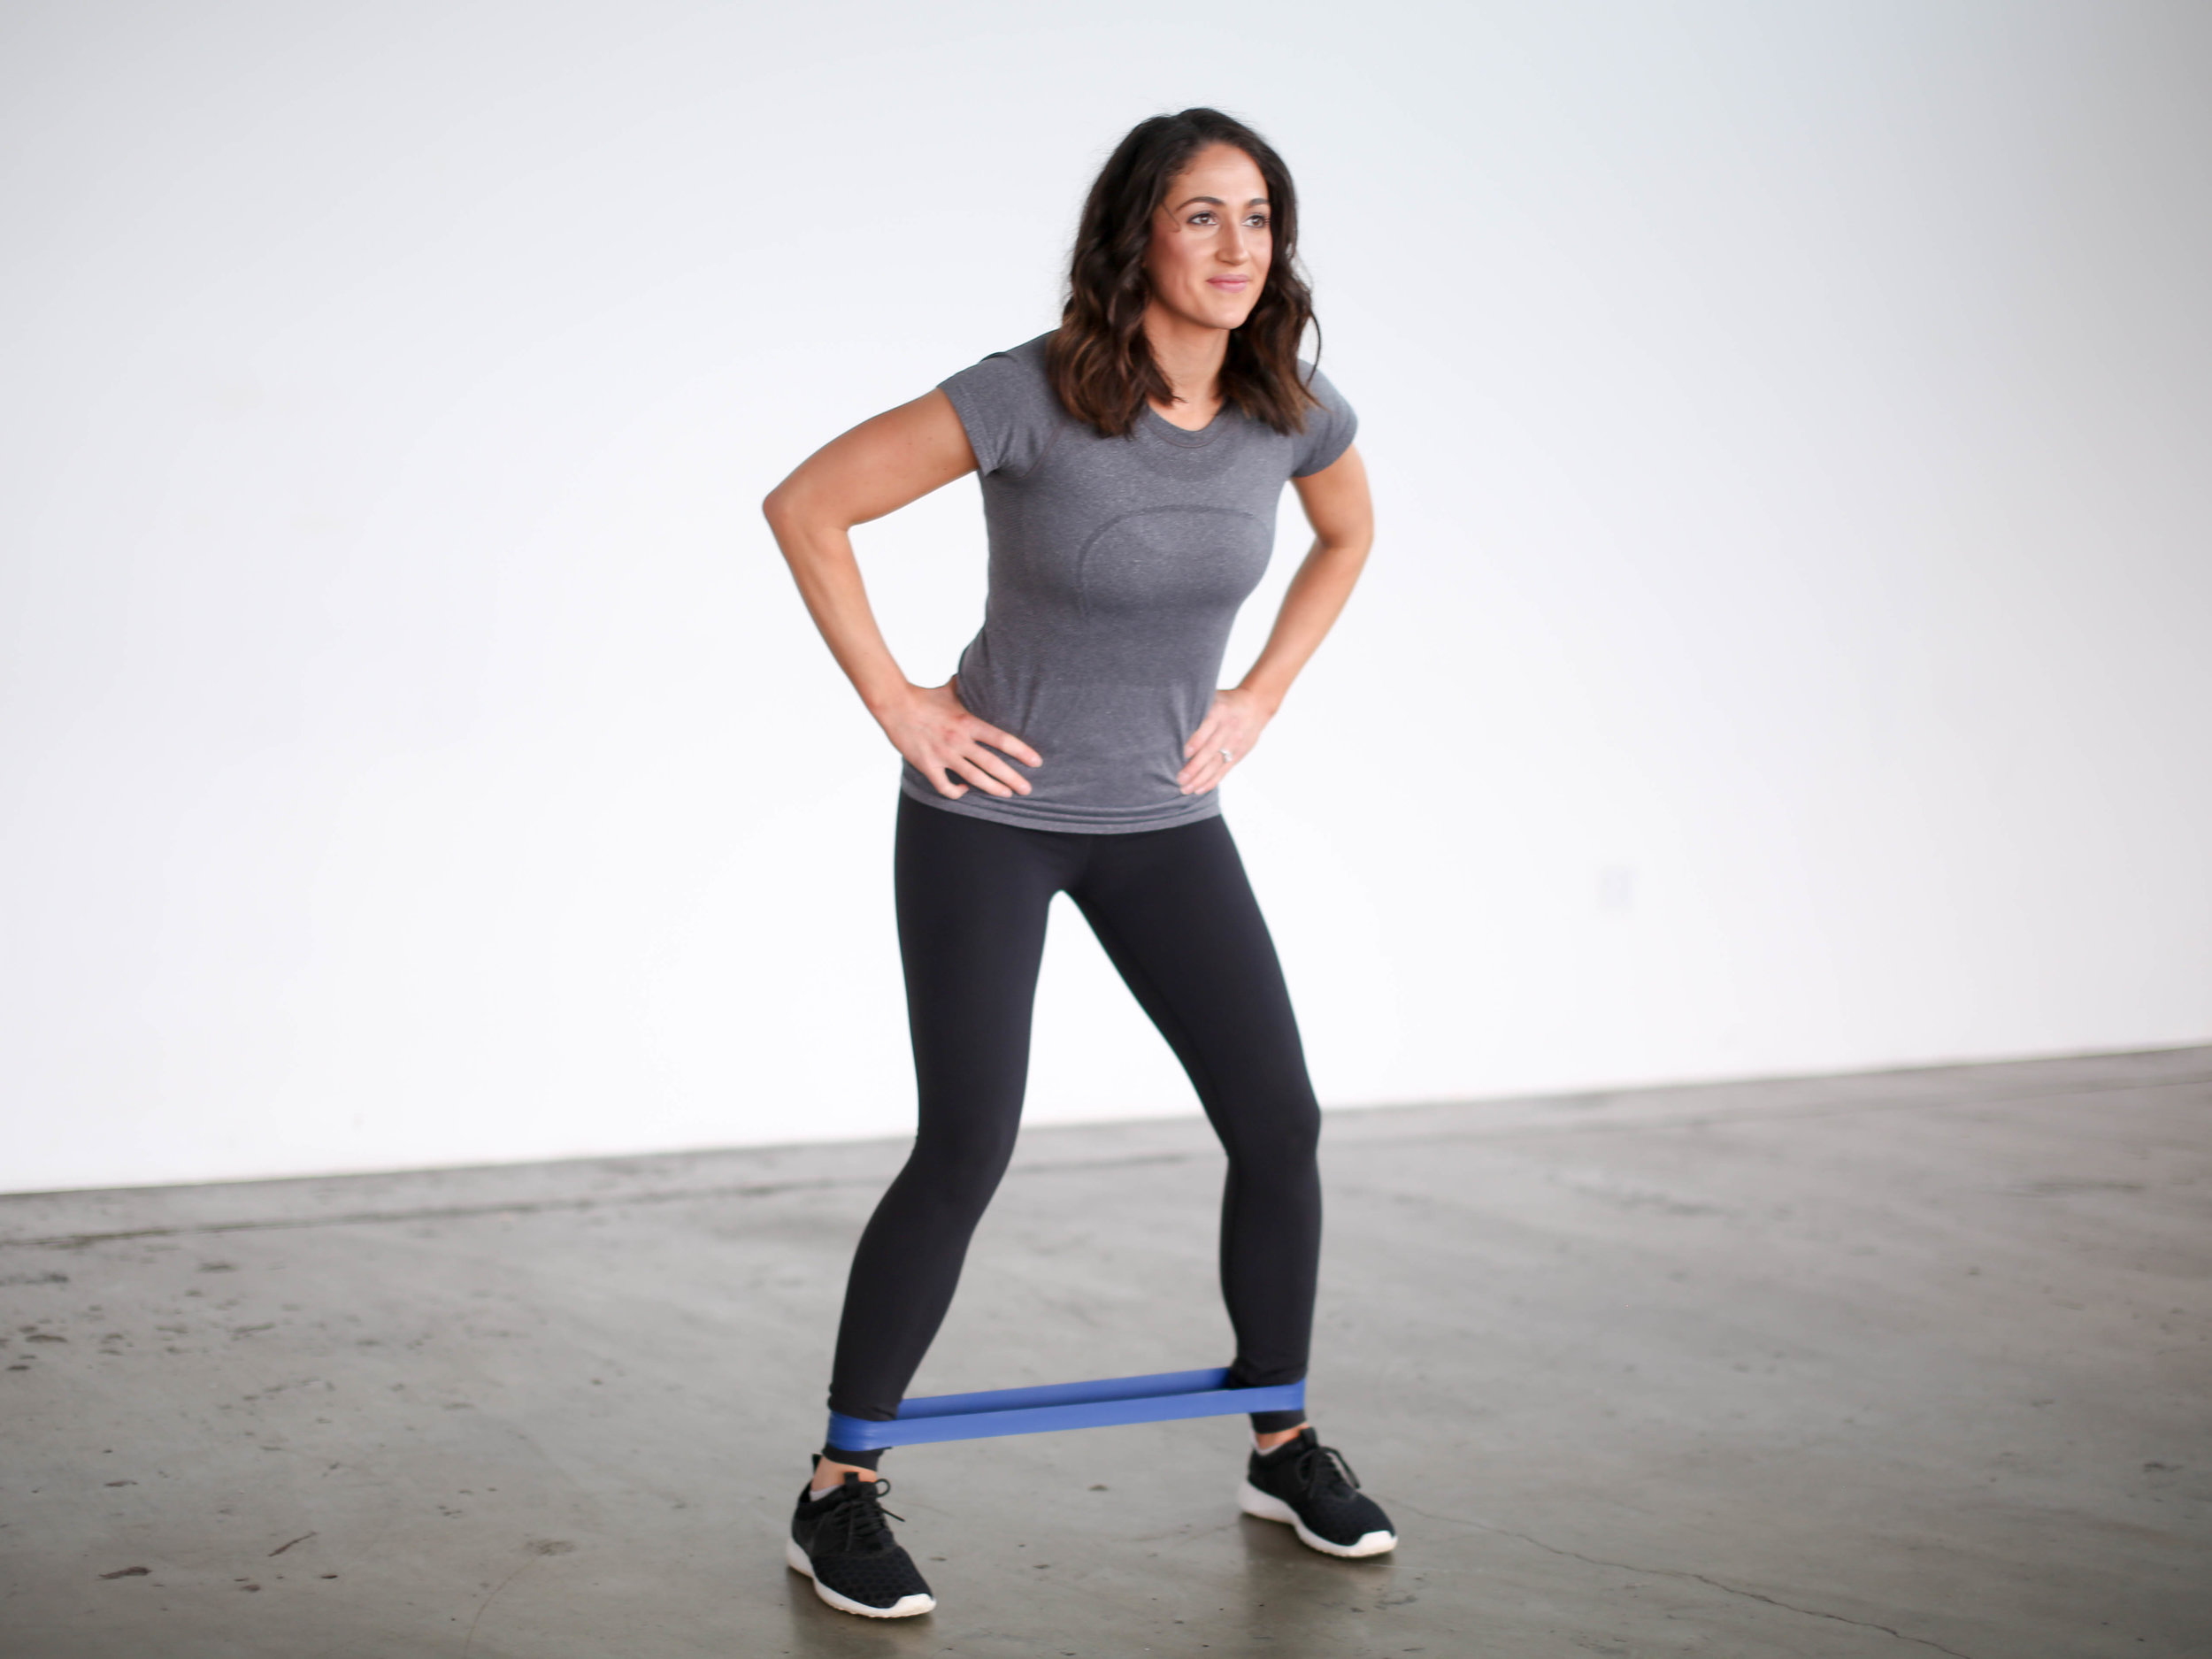 10 Moves to Tone and Strengthen Your Glutes by Jennifer Diaz // How to tone your glutes // moves for strong glutes // the best lower body exercises // best butt exercises